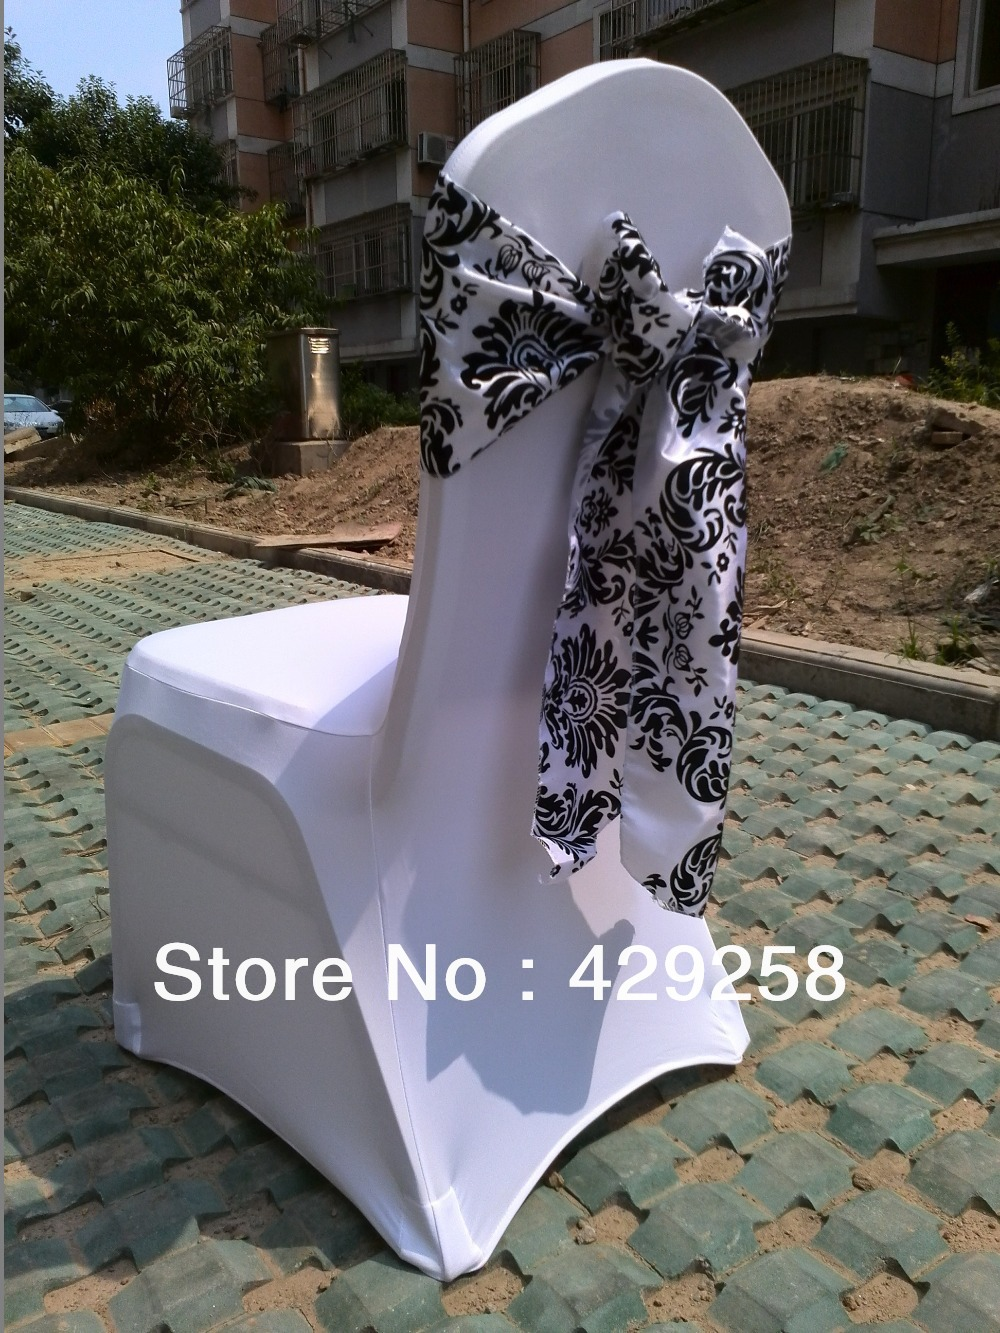 chair cover elegance reclining camping chairs free shipping 50pcs white and black flocking taffeta sash also call damask corset